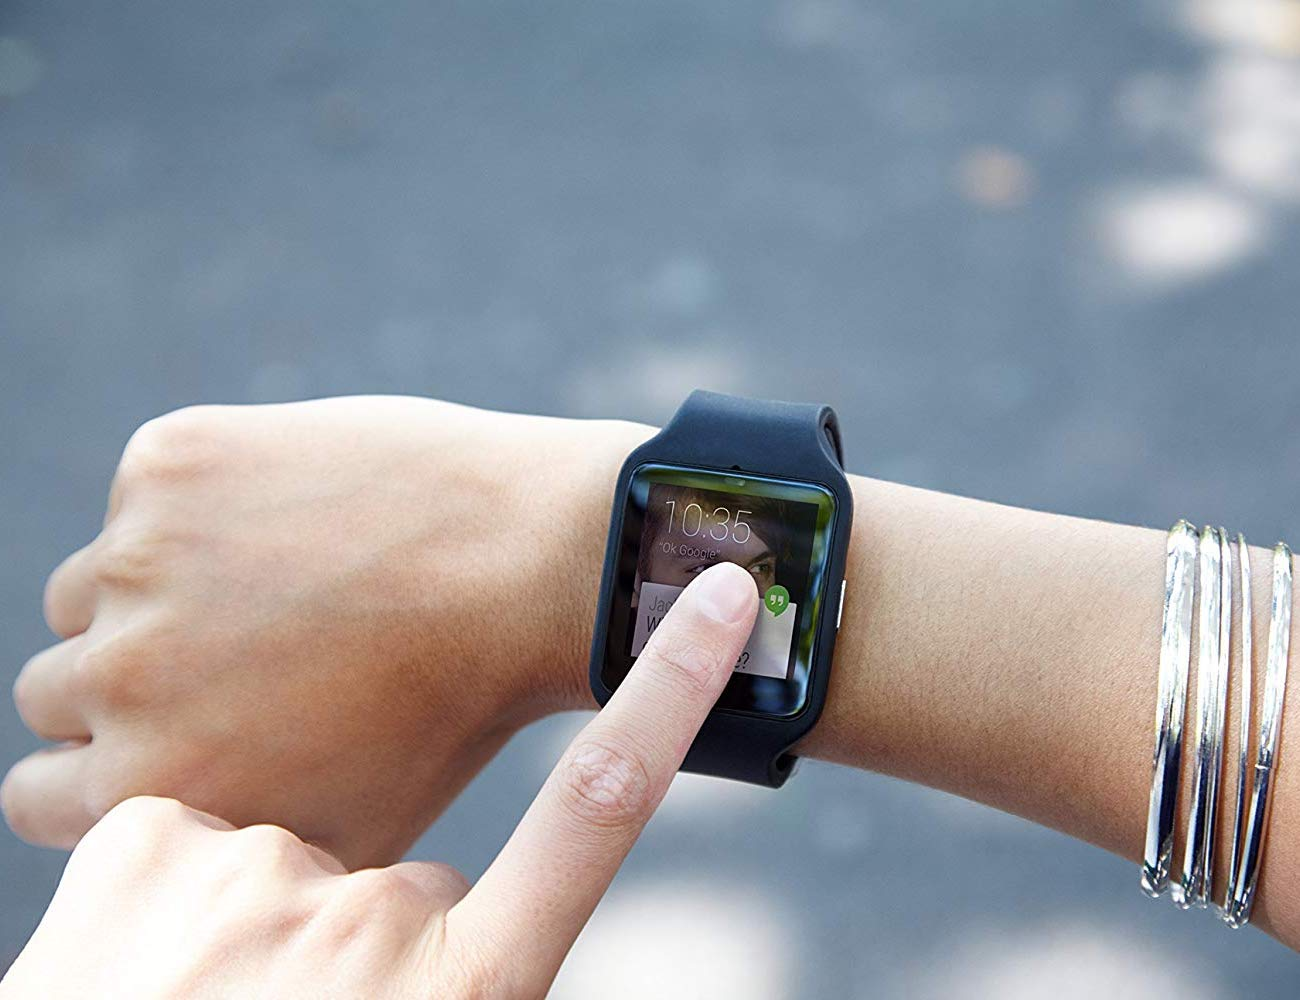 Sony SWR50 SmartWatch 3 Transflective Display Watch